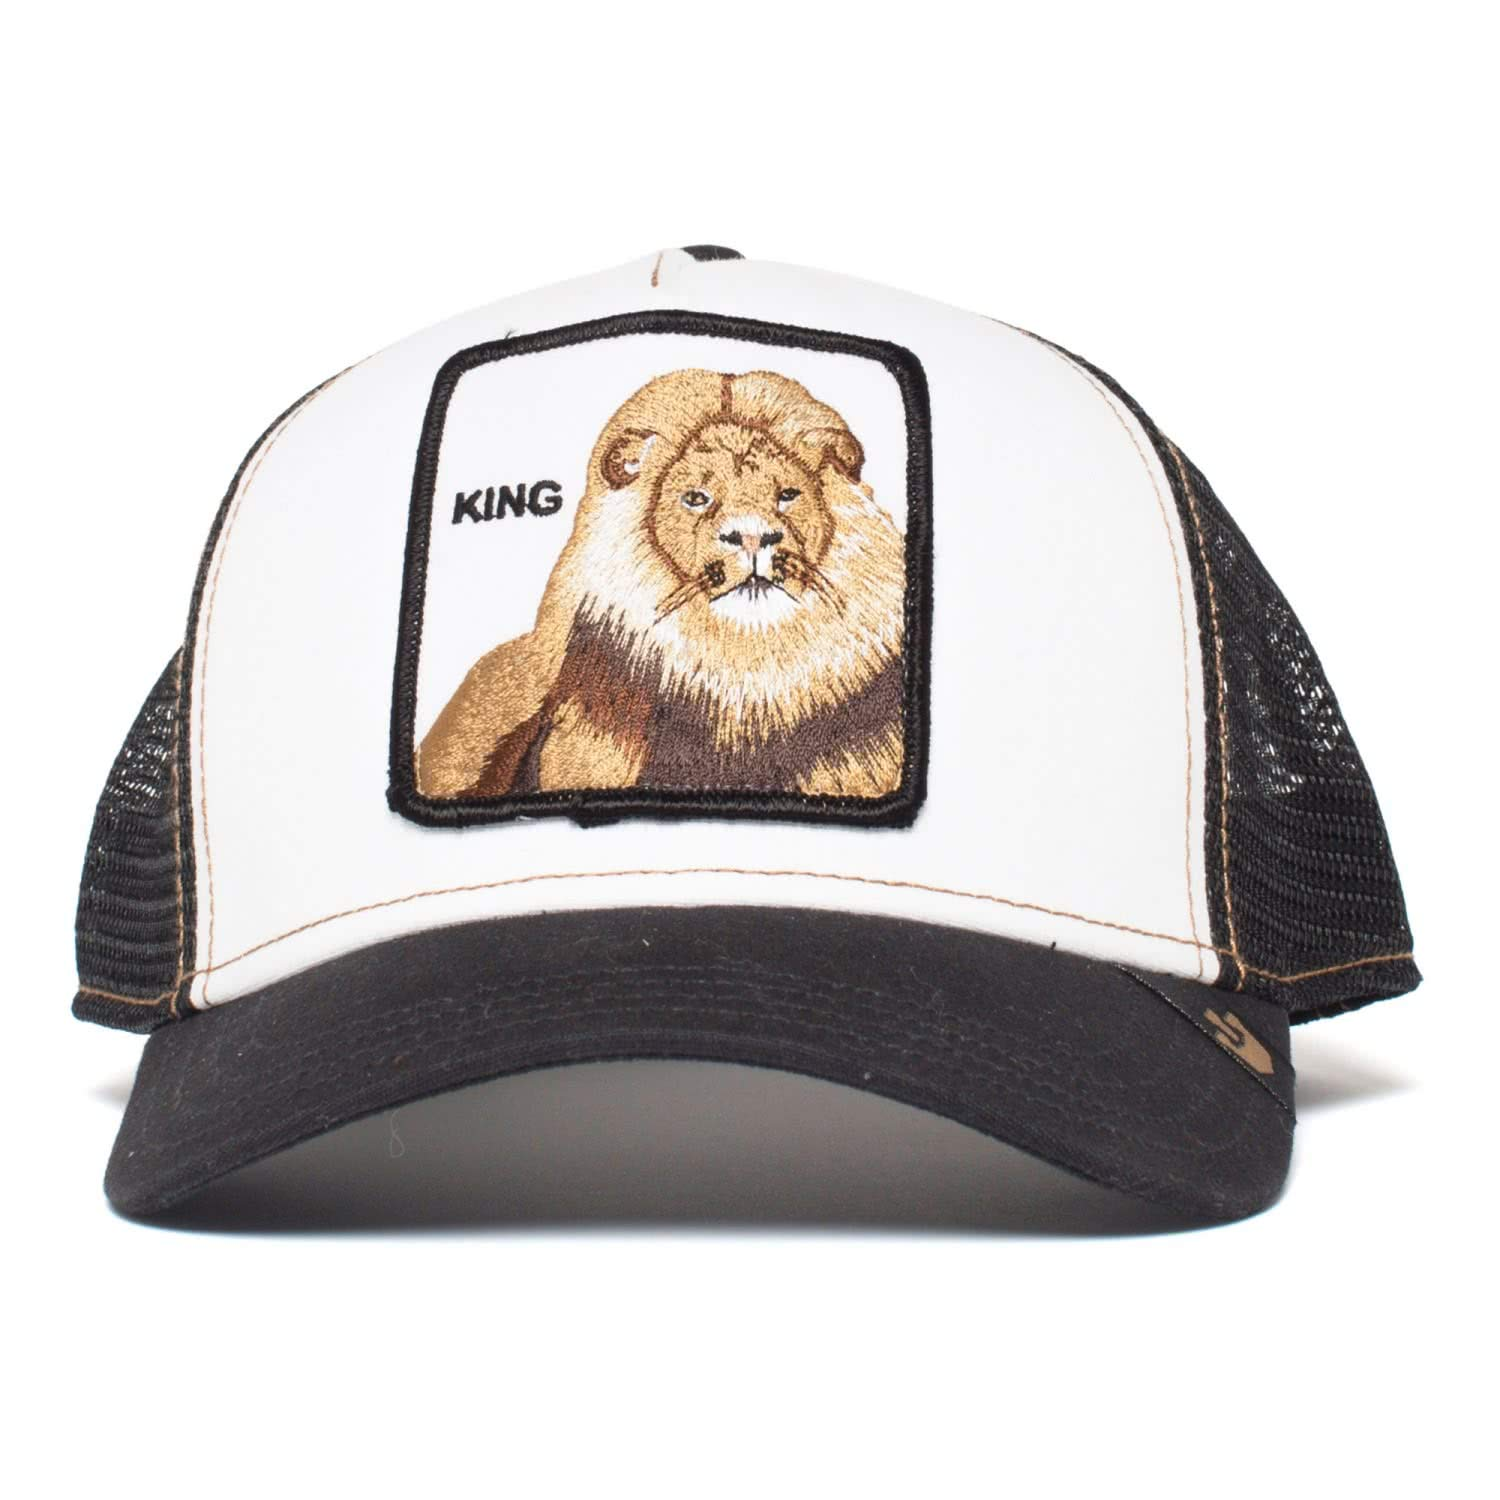 ca7610e7 Goorin Brothers Animal Farm Trucker Hat - Wild Collection King/Black, One  Size: Amazon.co.uk: Clothing